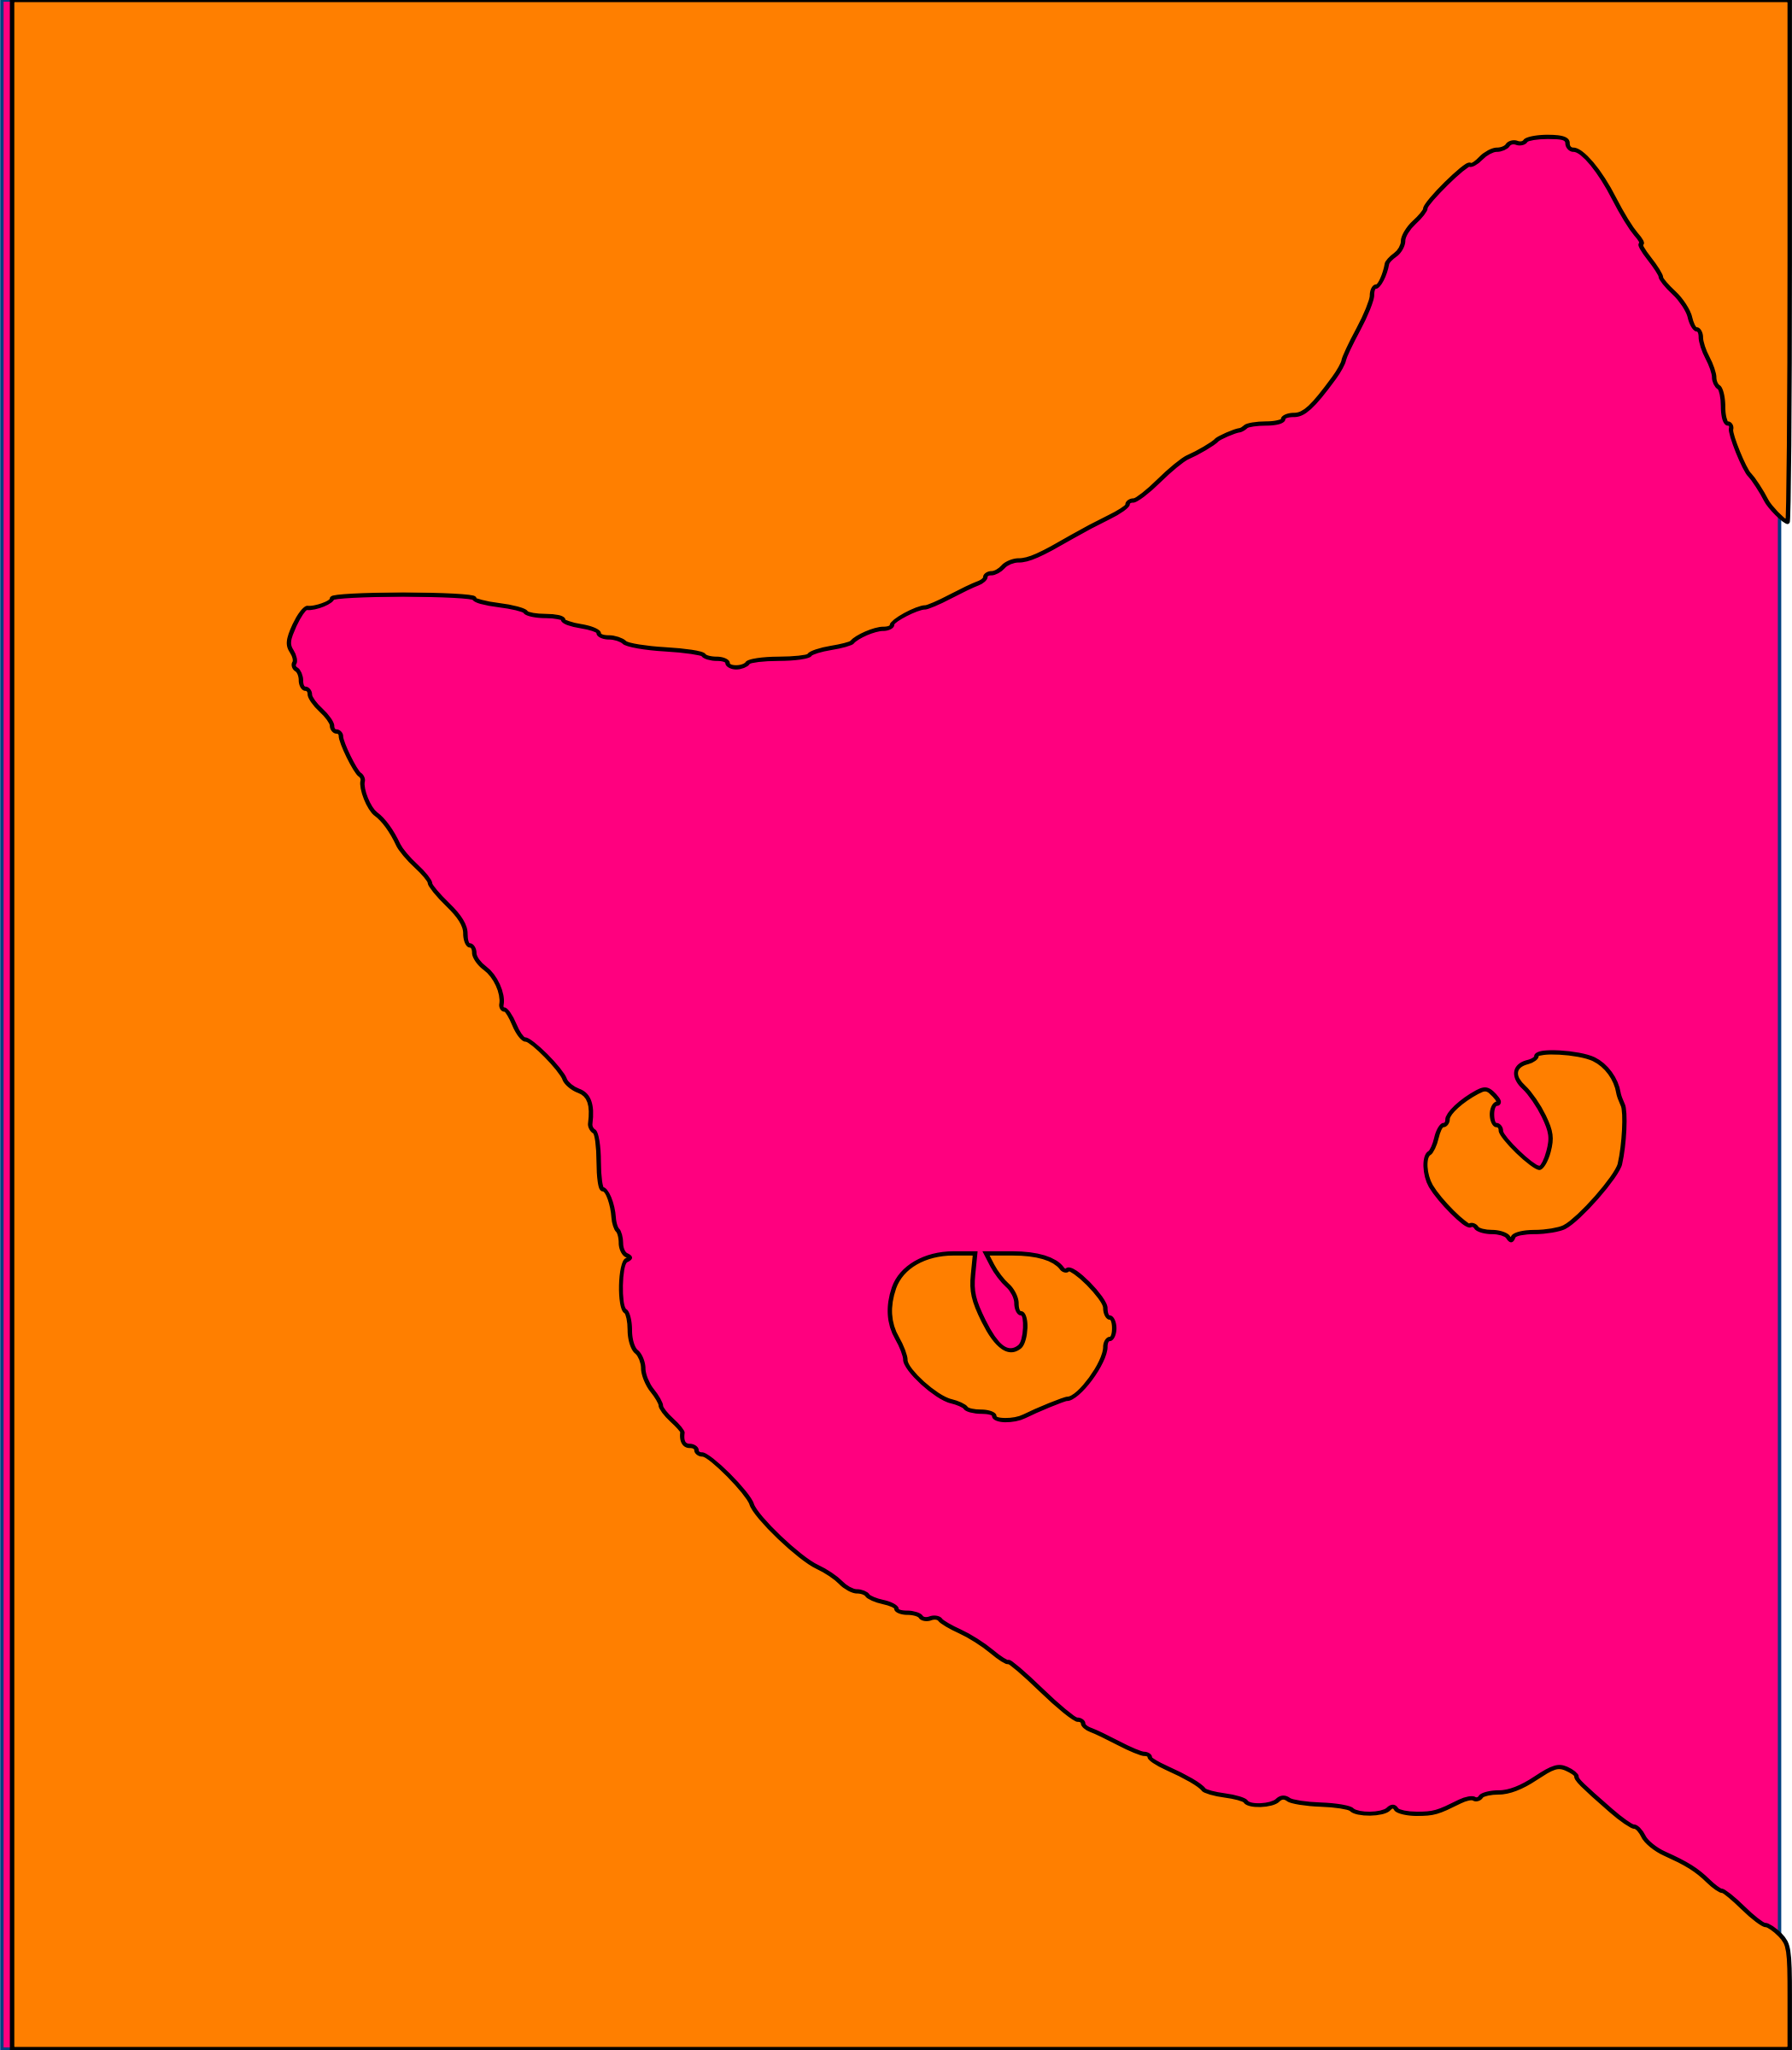 Cat remix vivid pink by BLASTFEMI